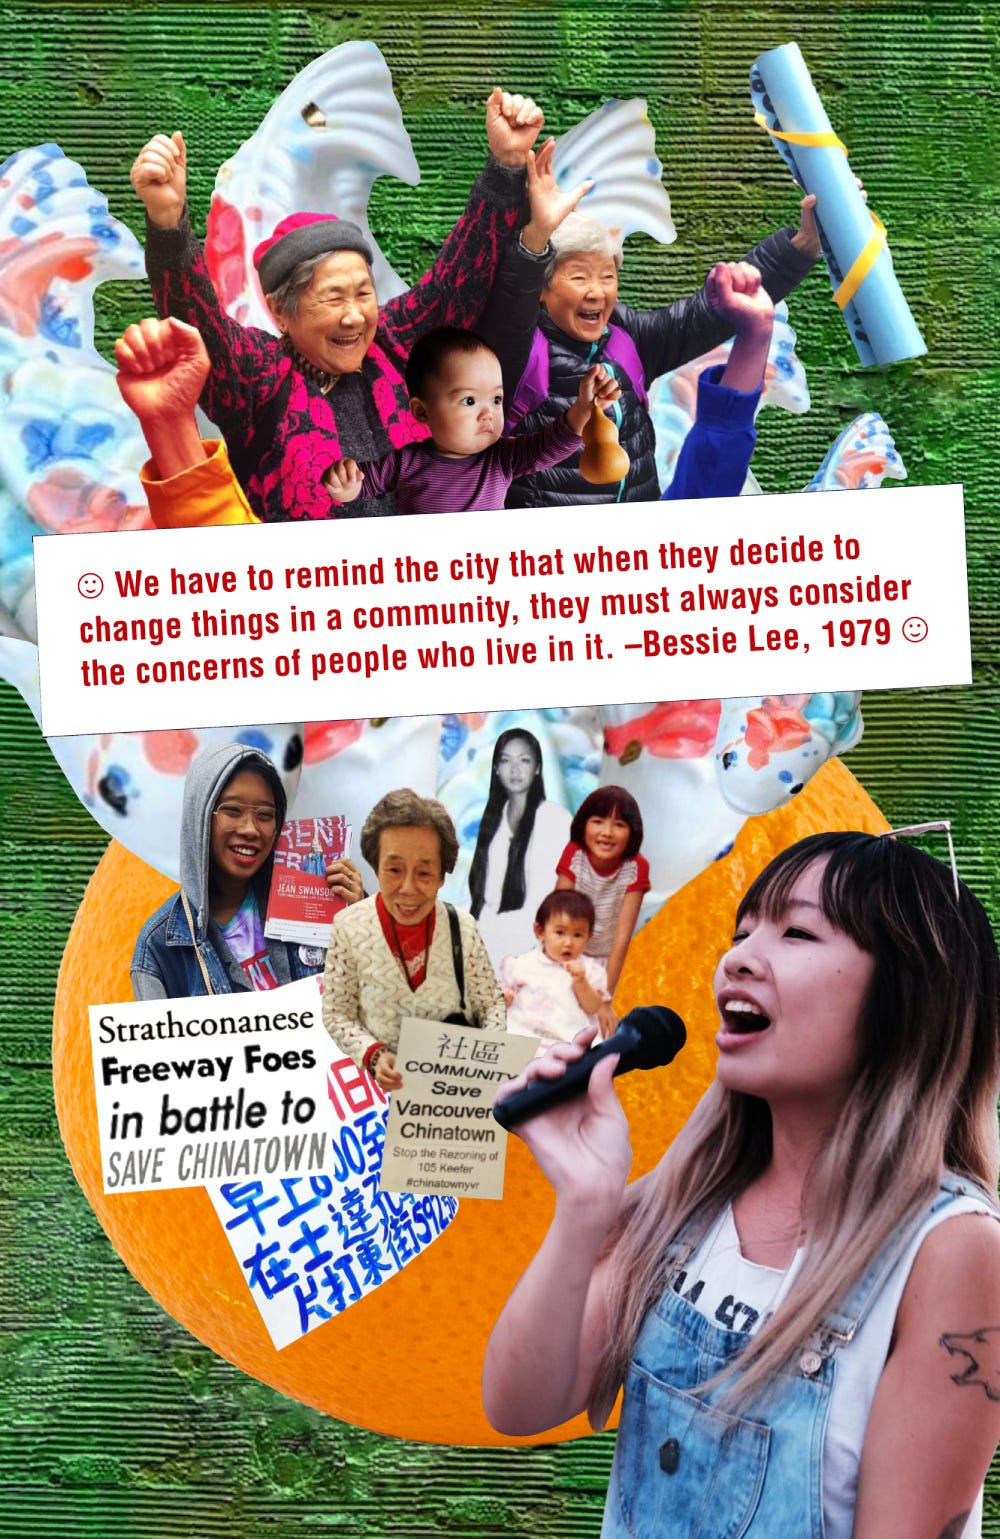 """The poster shows a digital collage, using recent and historical photos of matriarchal Chinatown elders, organizers, activists, and community members. Some of the people have their fists in their air, smiling, others are holding signs that say, """"Save Vancouver Chinatown."""" A white banner says, """"We have to remind the city that when they decide to change things in a community, they must always consider the concerns of people who live in it. --Bessie Lee, 1979"""""""